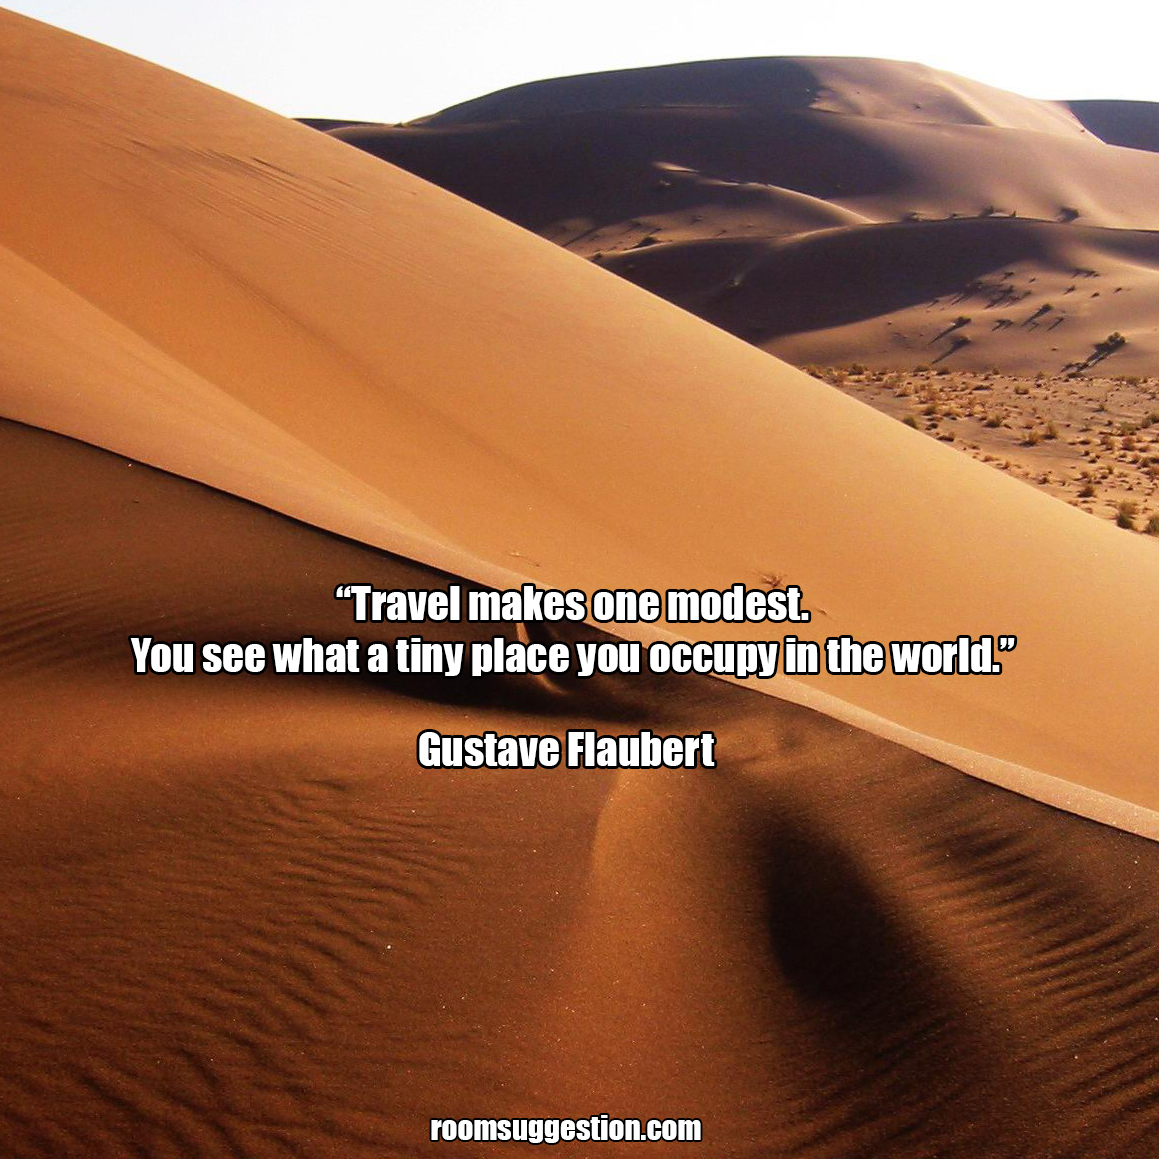 gustave-flaubert-travel